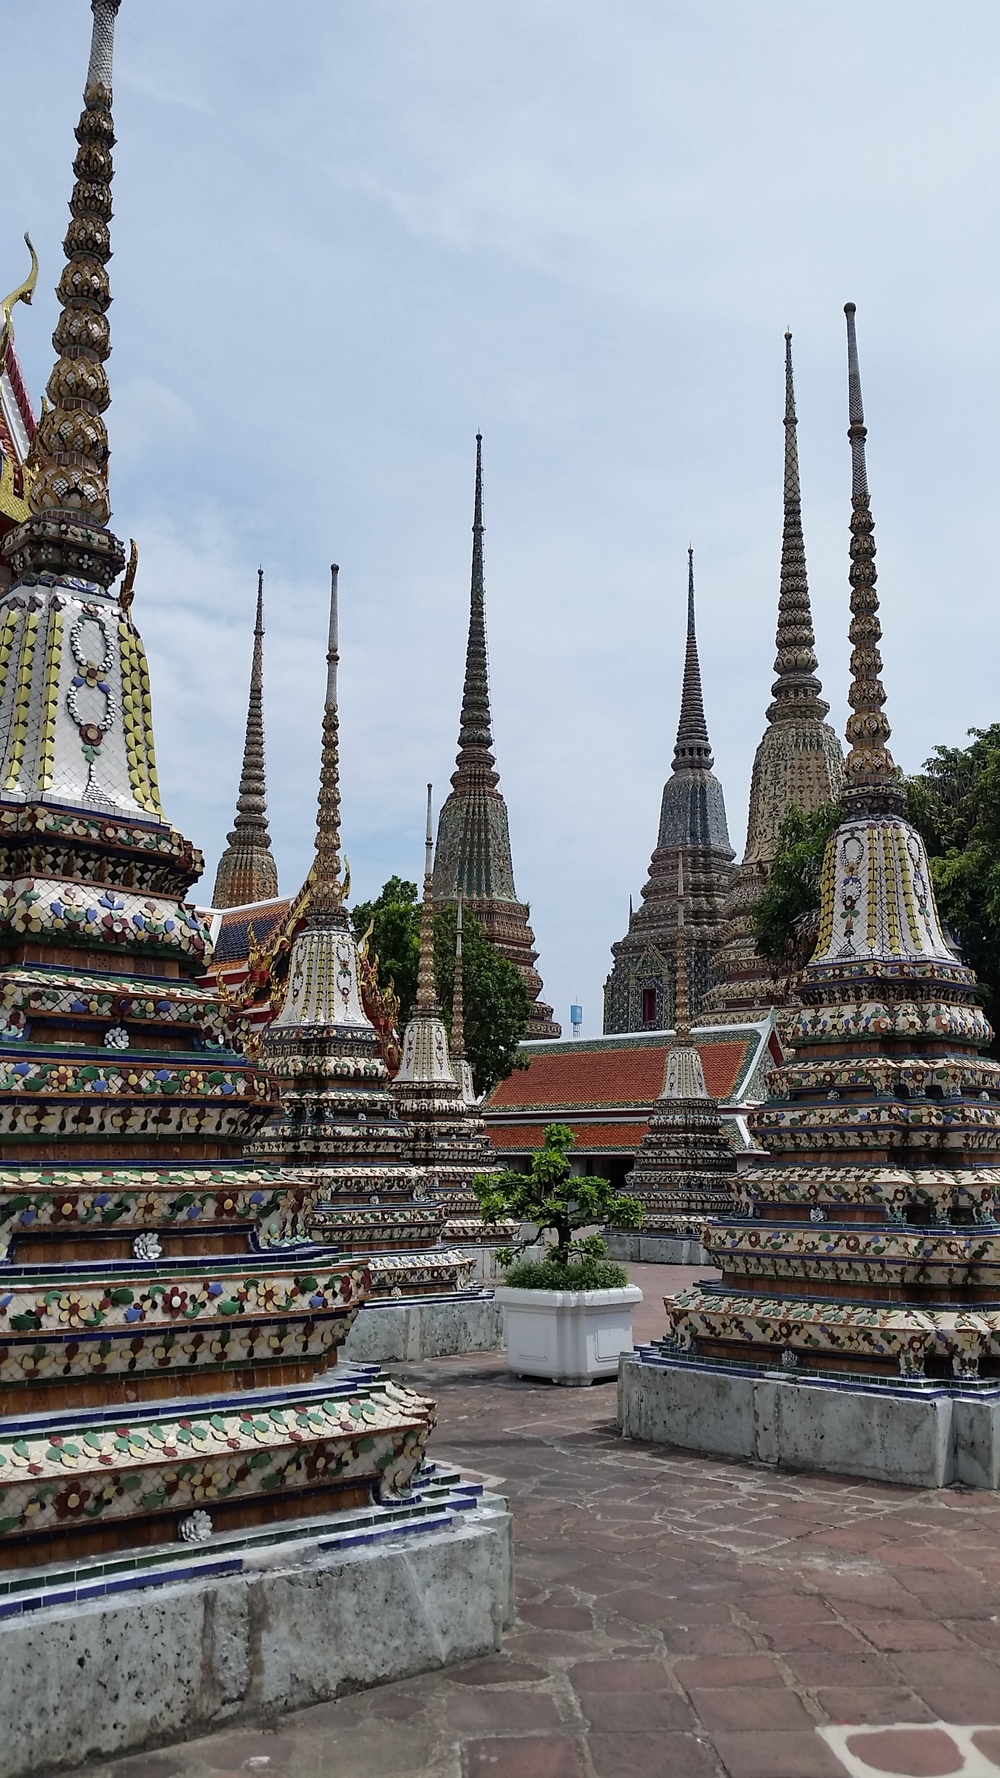 Beautiful architecture at the temple of Wat Pho near the Royal Palace in Bangkok